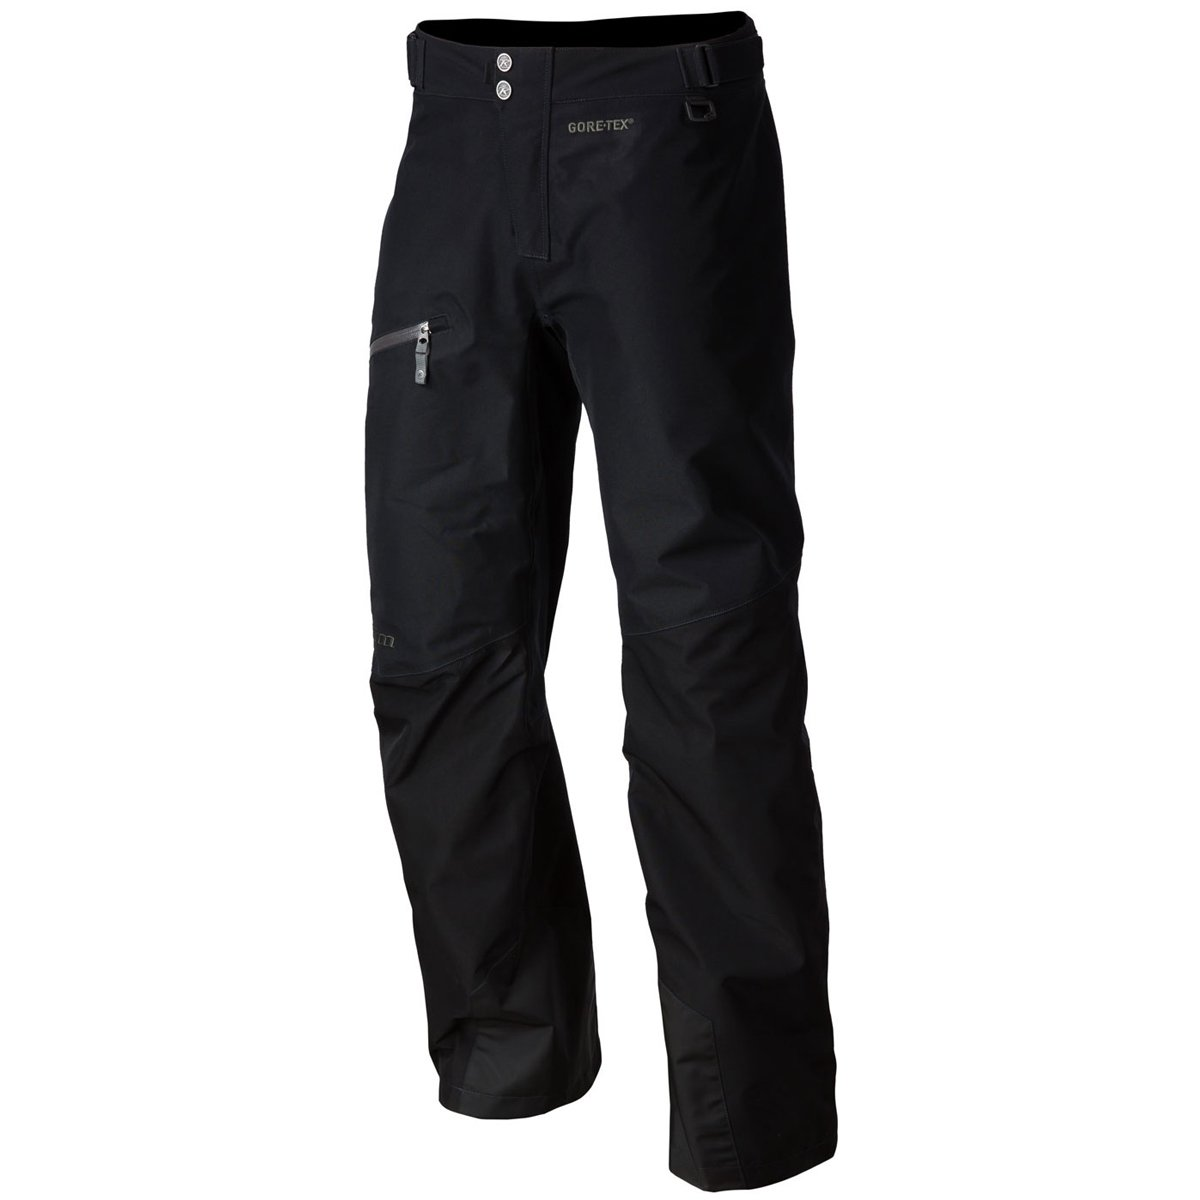 Klim Instinct Men's Ski Snowmobile Pants - Black / 2X-Large Tall by Klim (Image #1)